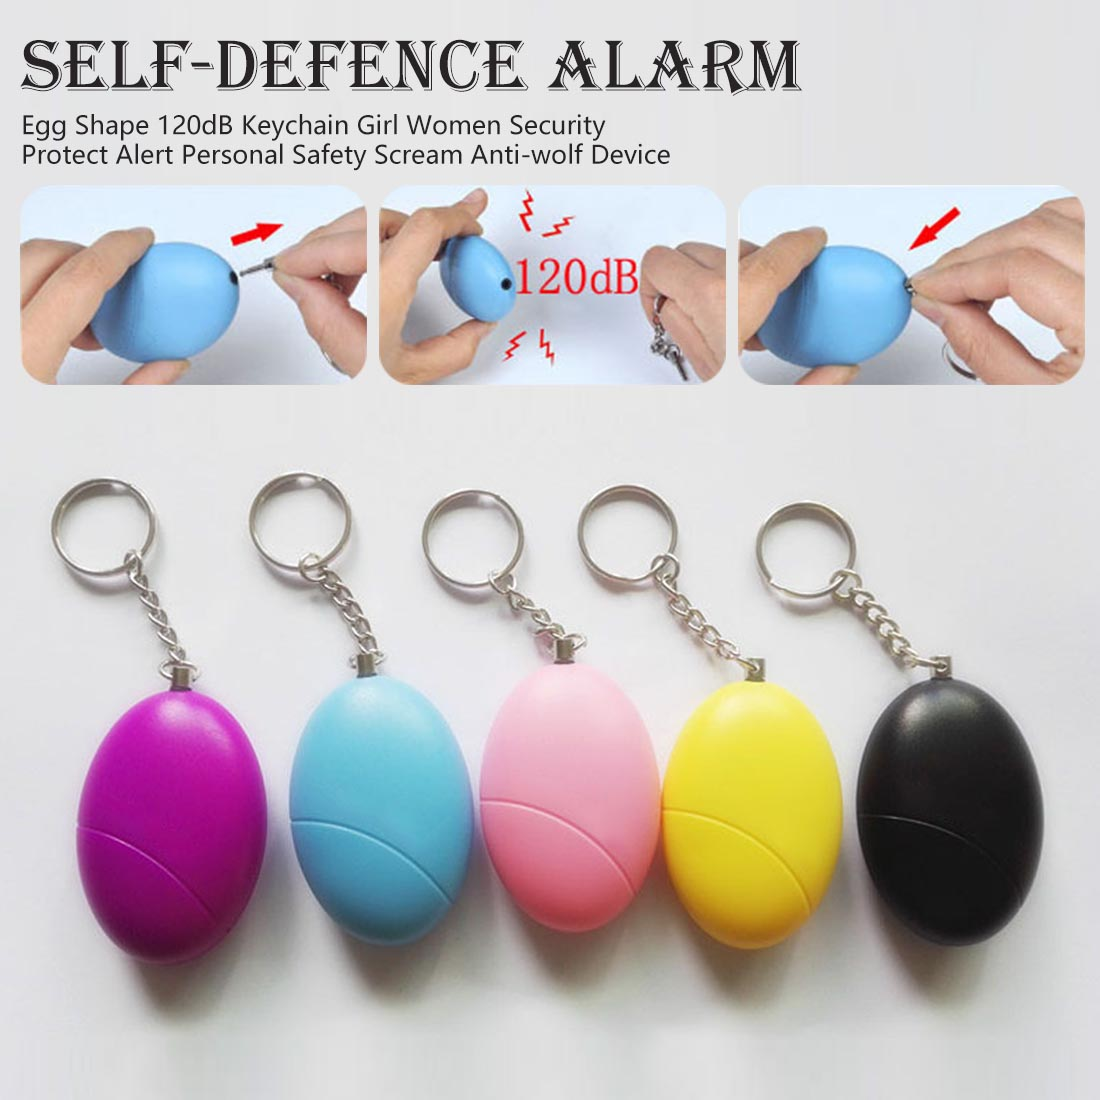 Egg Shape 120dB Keychain Girl Or Women Security Protect Alert Personal Safety Scream Anti-wolf Device